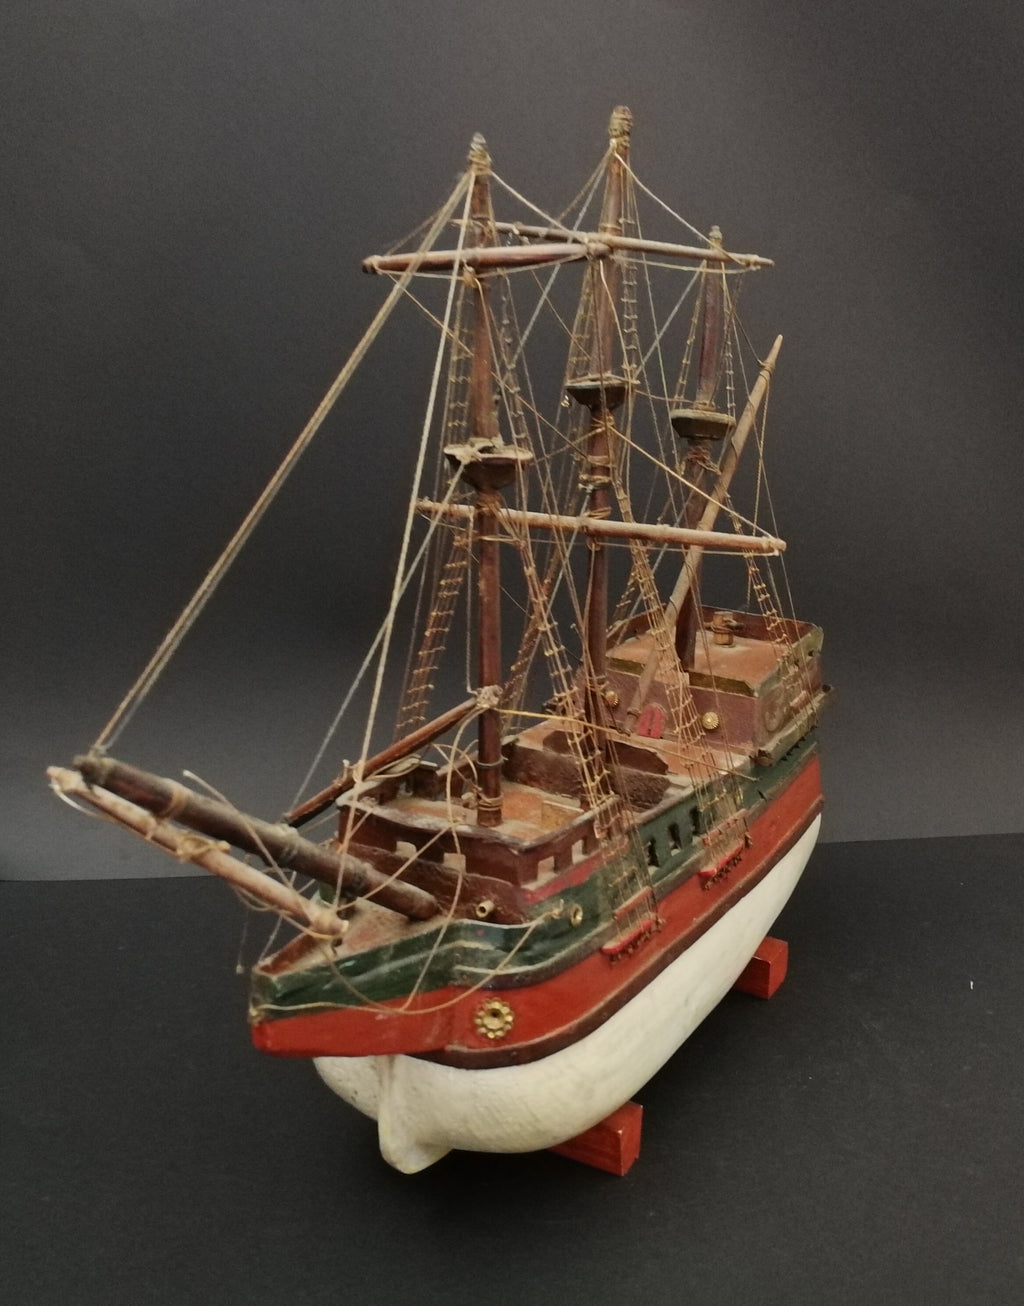 A1050 - Antique model boat